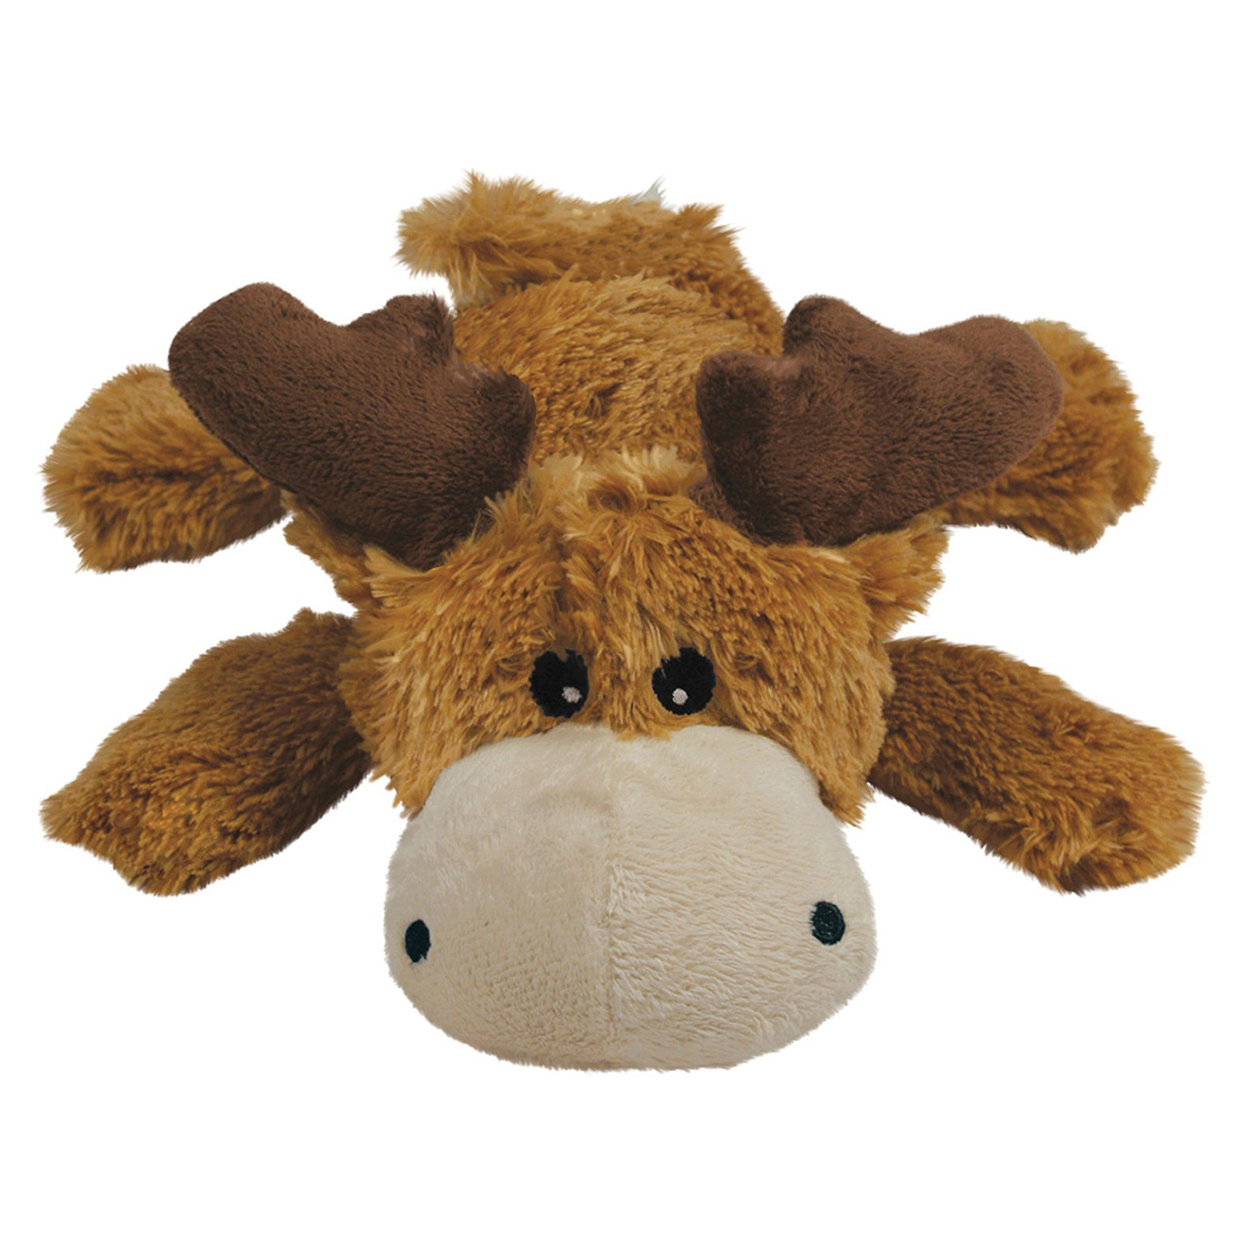 Kong Cozie Marvin the Moose Plush Dog Toy on a white background